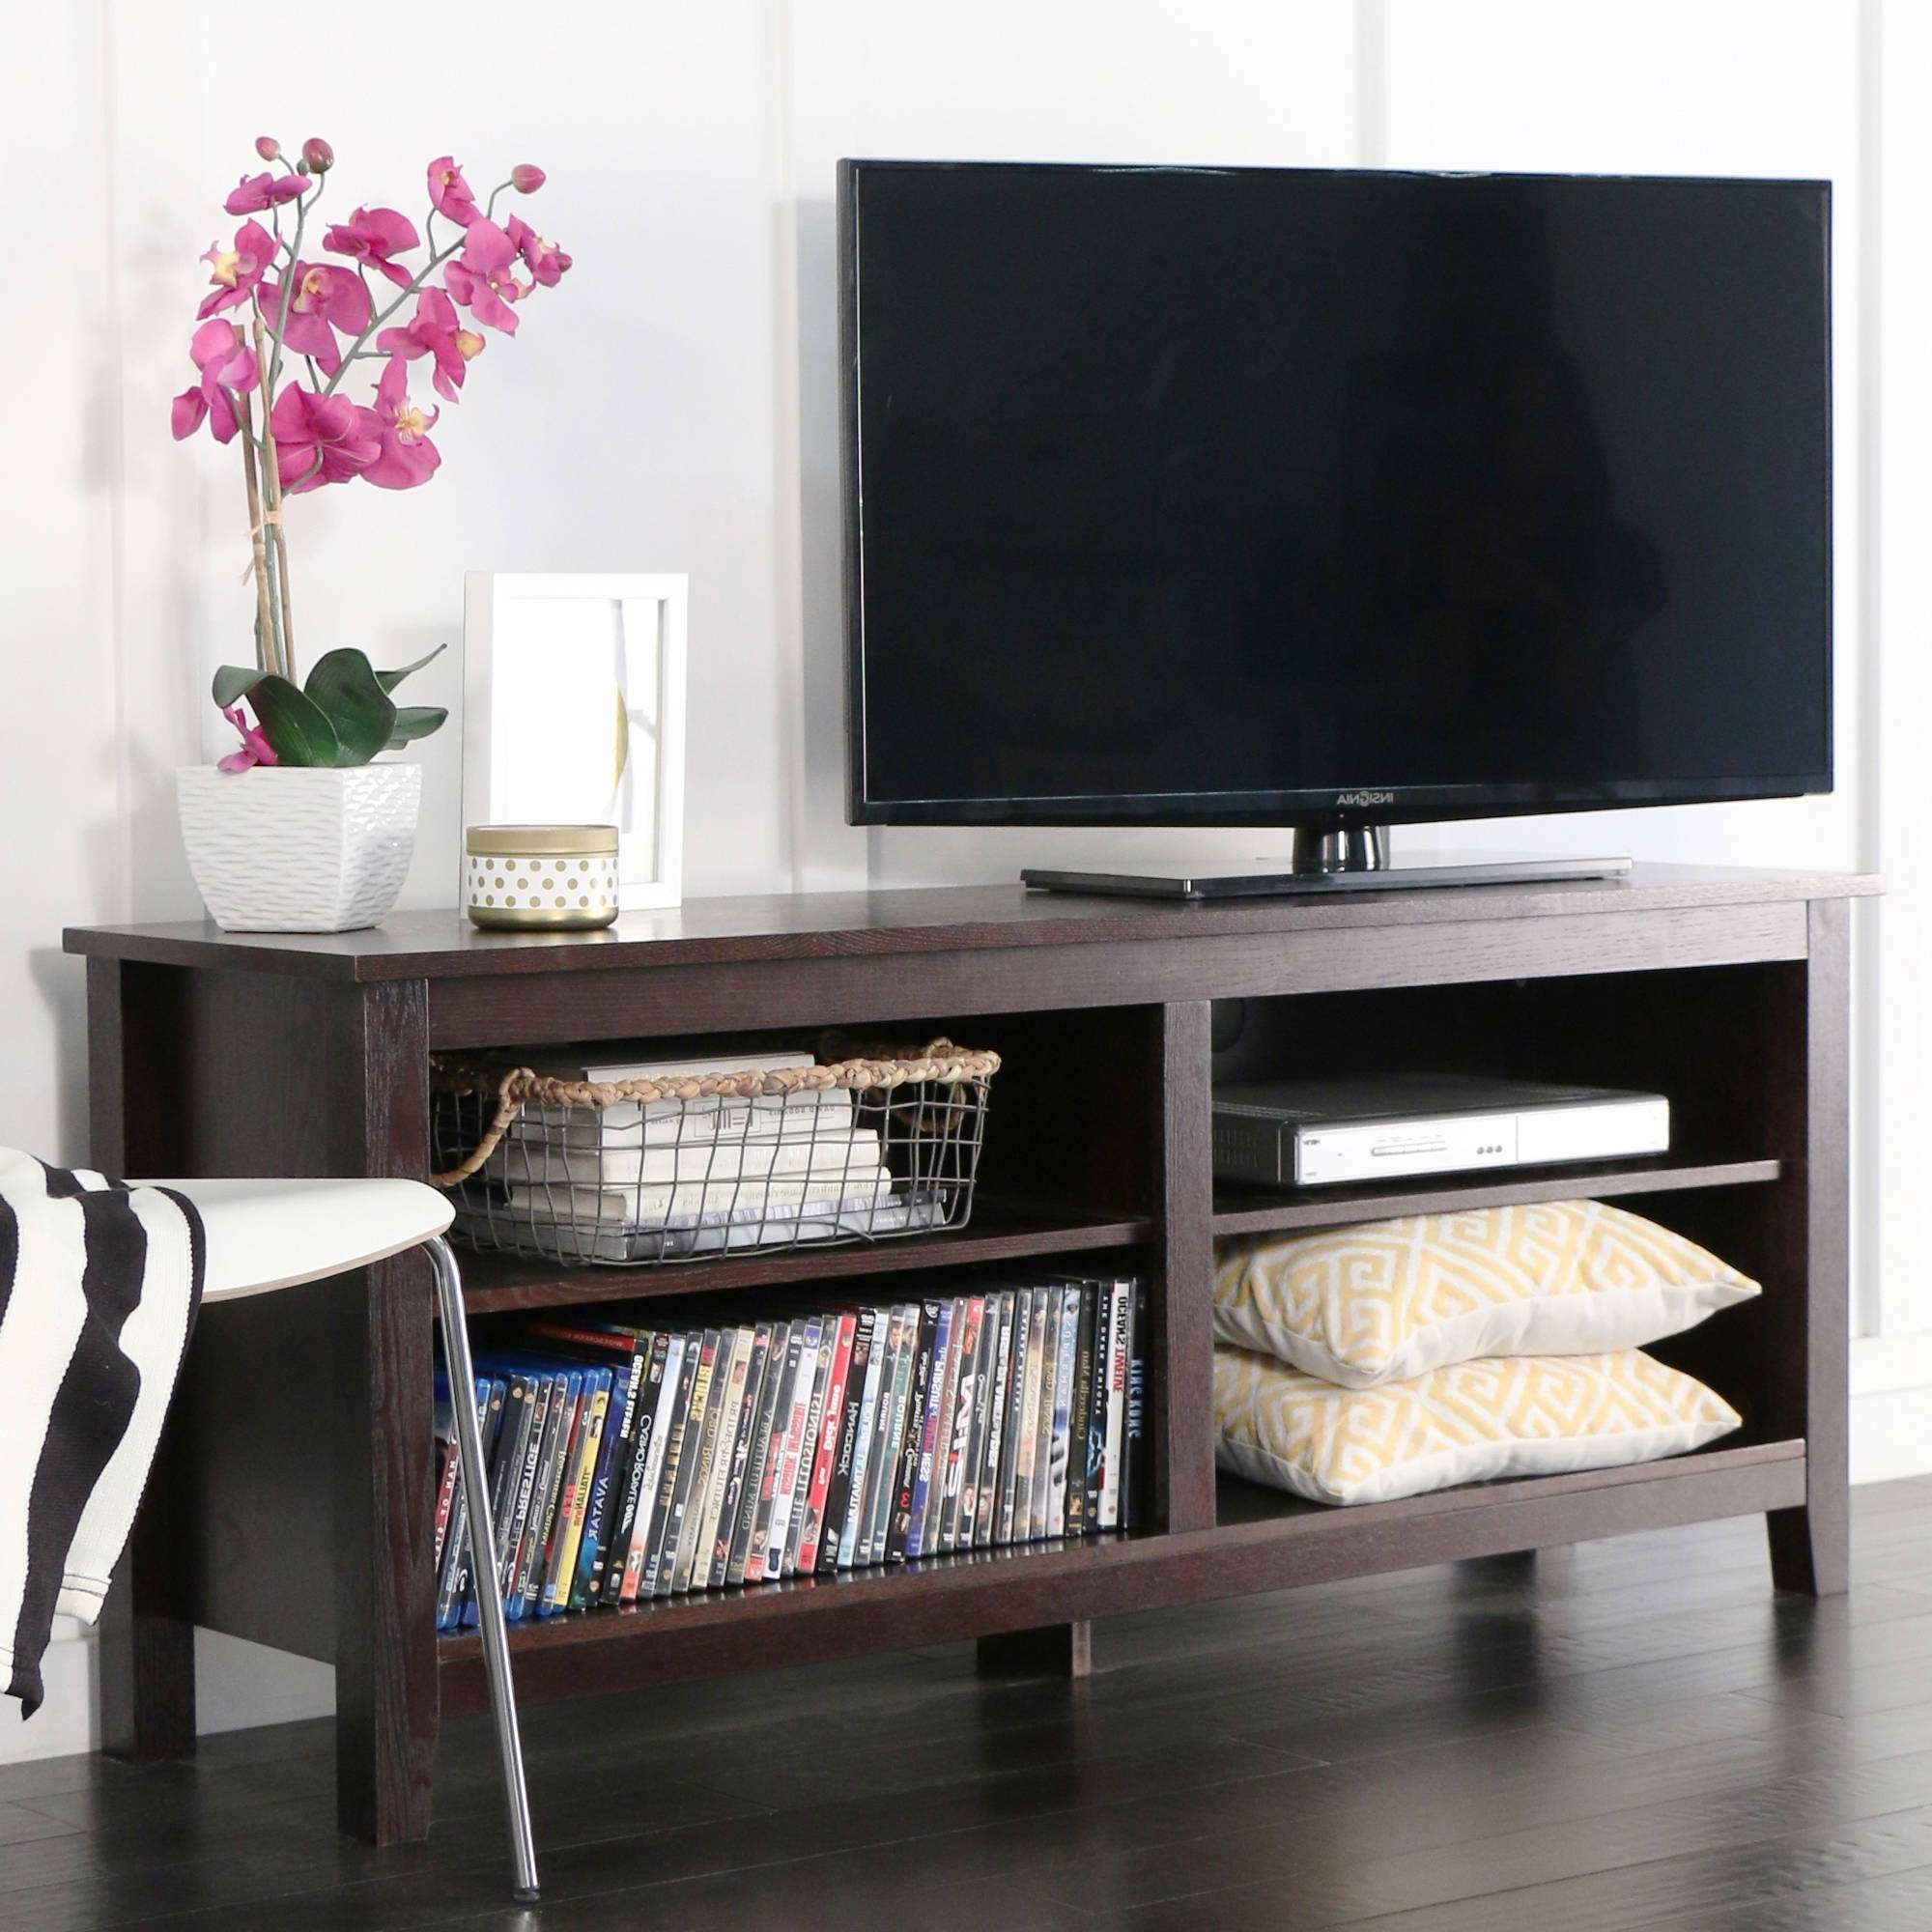 Tv : Rustic 60 Inch Tv Stands Dramatic Rustic 60 Inch Tv Stands For Rustic 60 Inch Tv Stands (View 8 of 15)